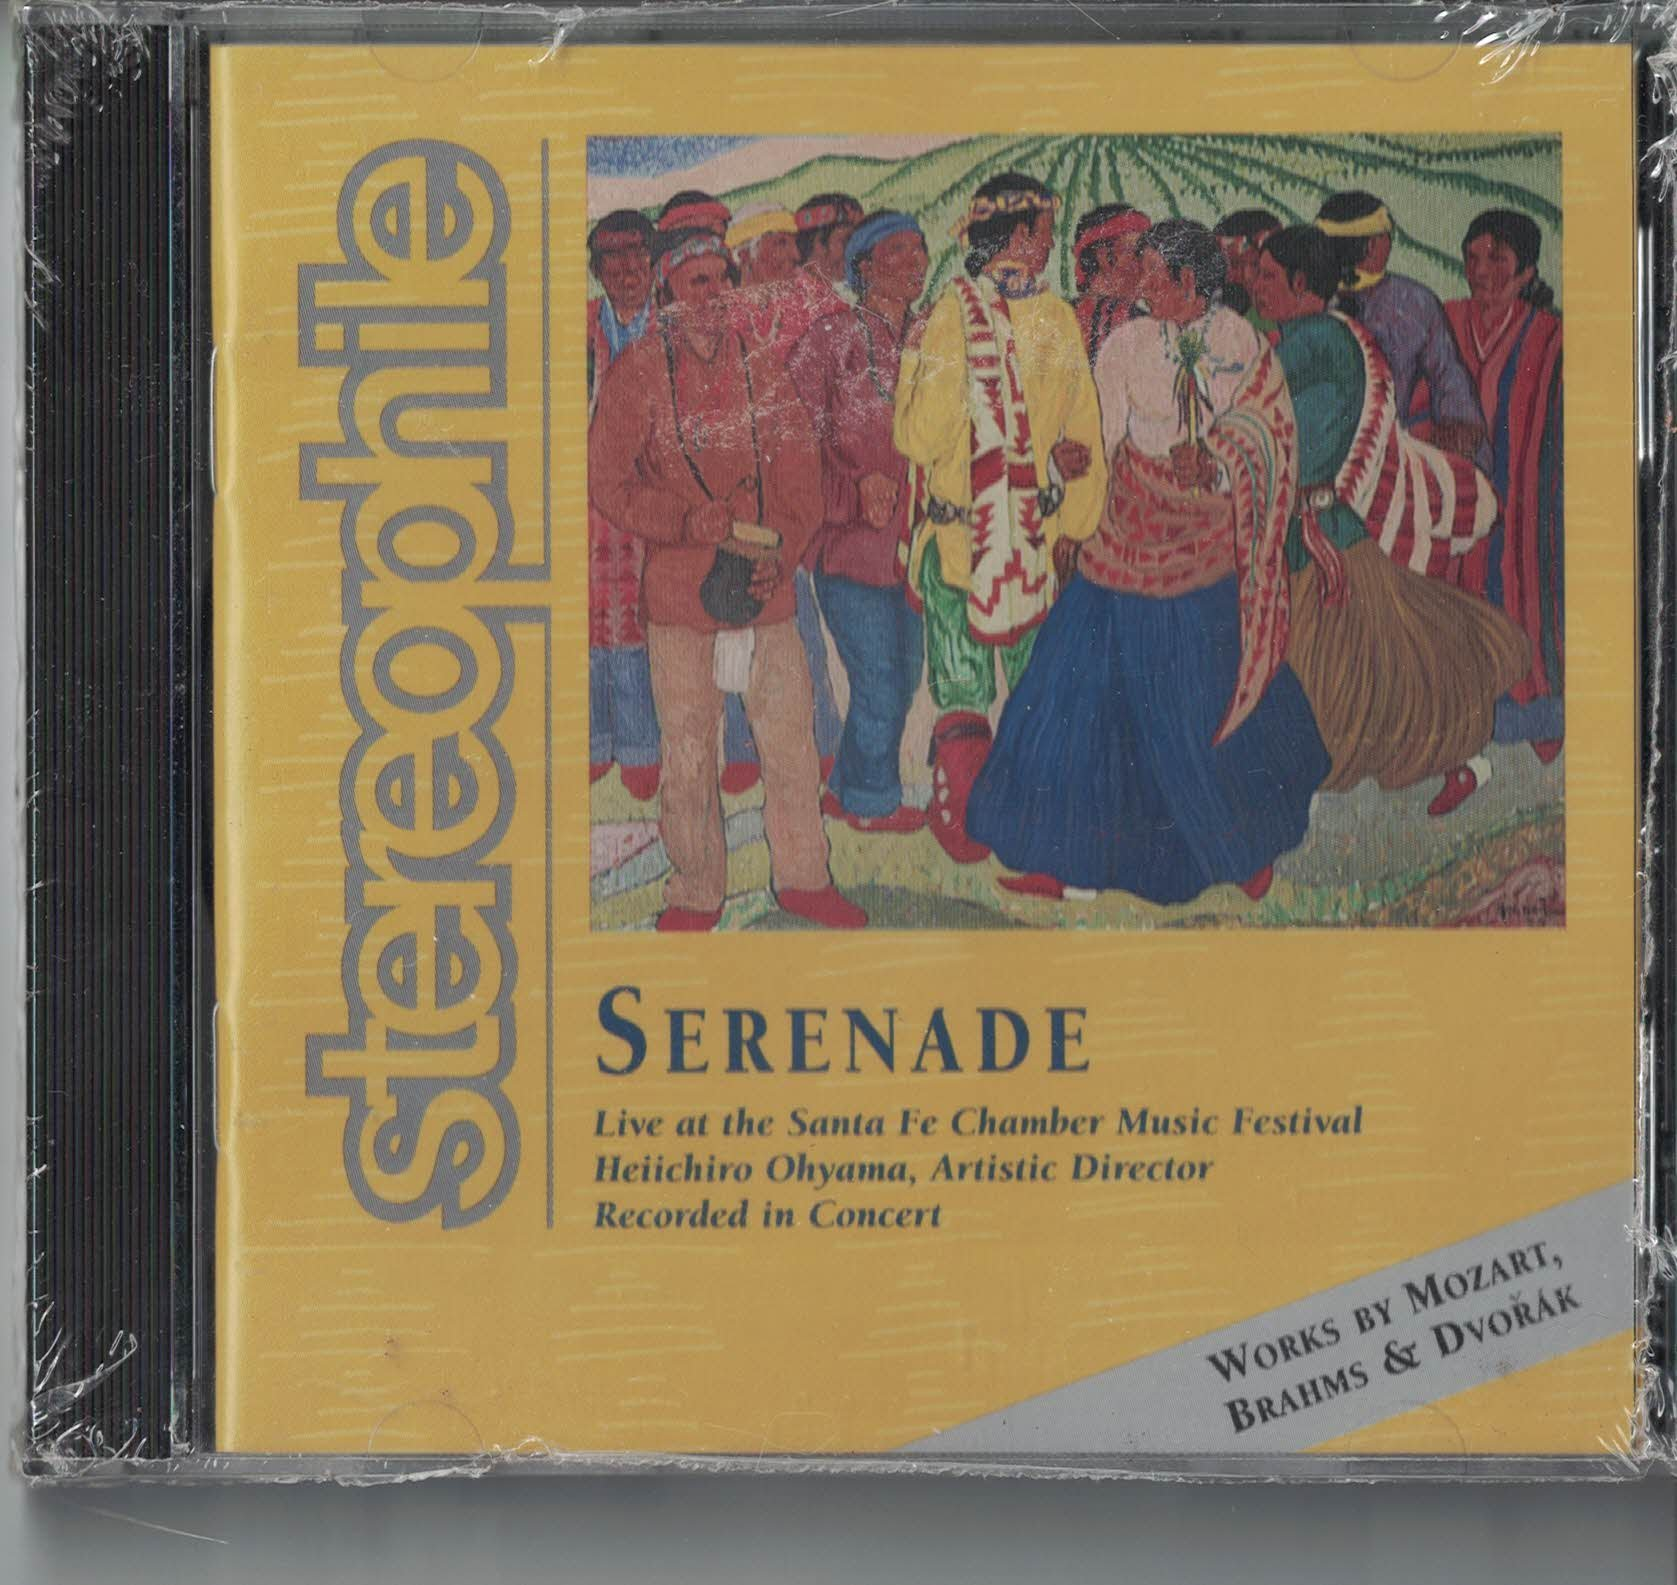 Serenade: Live At The Santa Fe Chamber Music Festival by Stereophile